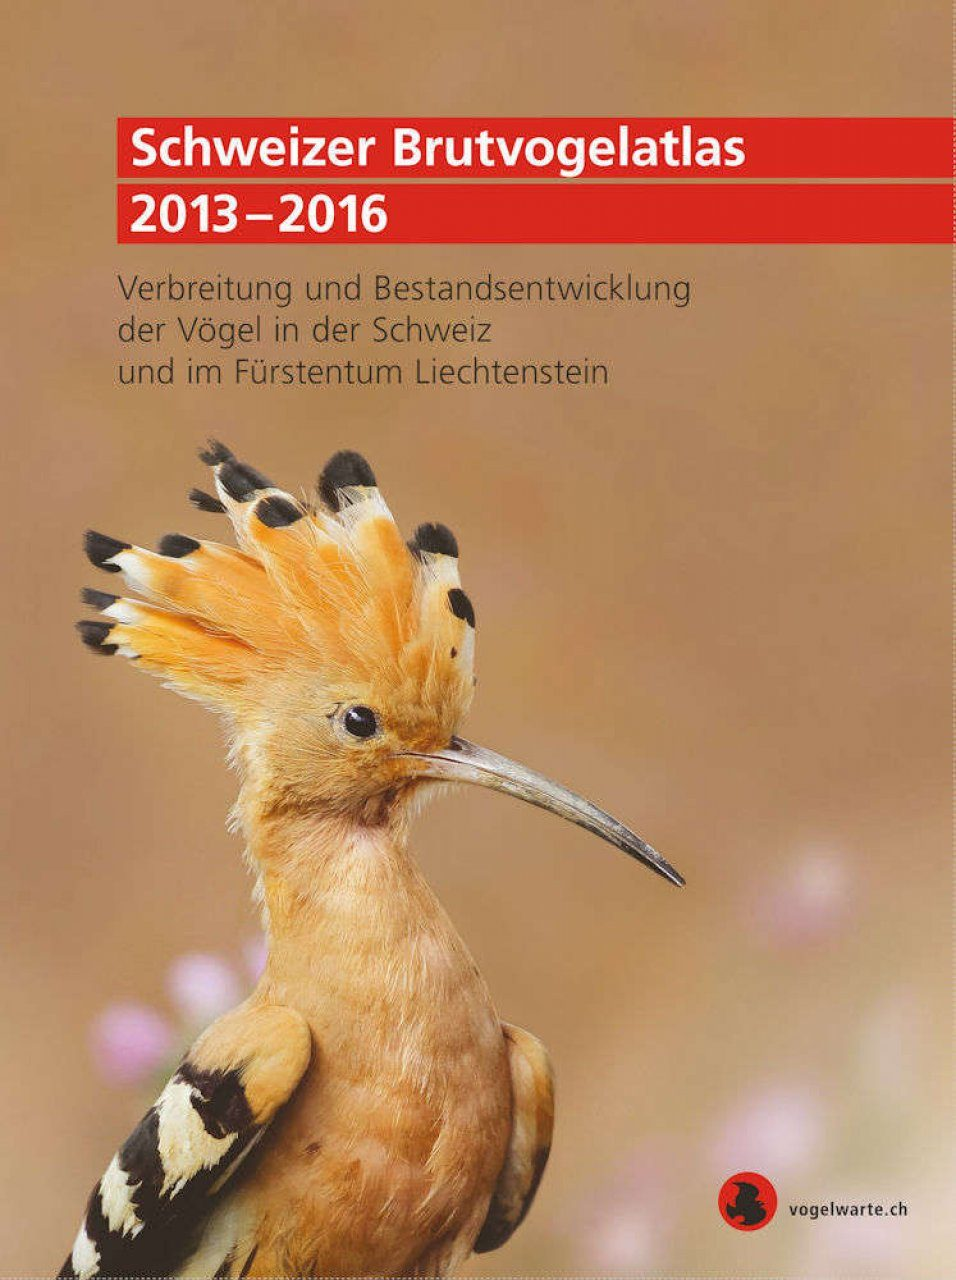 Schweizer Brutvogelatlas 2013–2016: Verbreitung und Bestandsentwicklung der Vögel in der Schweiz und in Fürstentum Liechtenstein [Swiss Breeding Bird Atlas 2013–2016: Distribution and Population Trends of Birds in Switzerland and Liechtenstein]